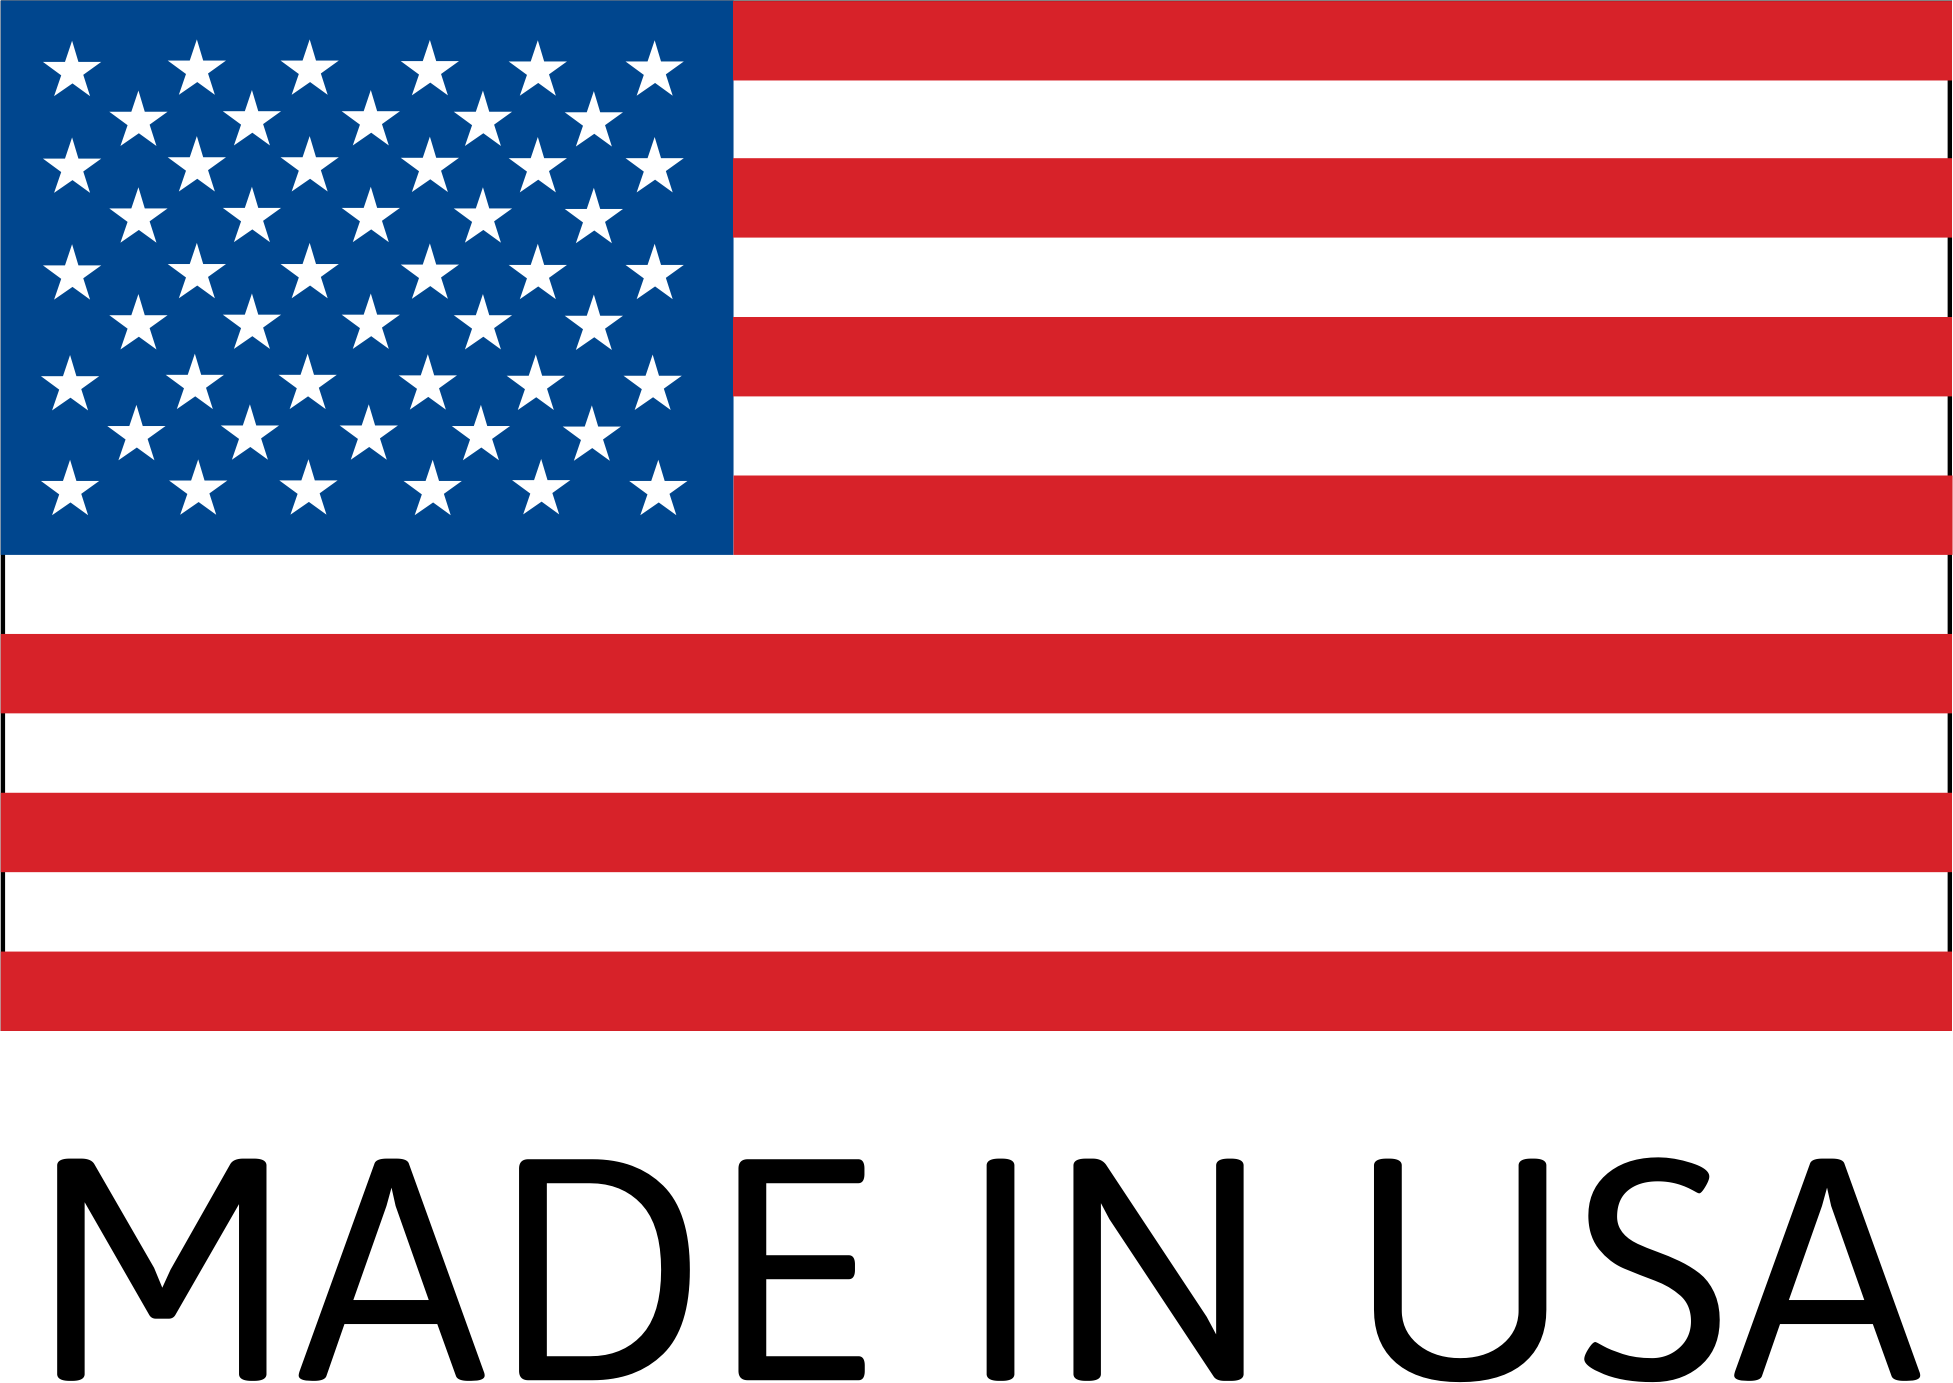 United states flag clipart vector royalty free library Clipart - Made in USA Flag vector royalty free library